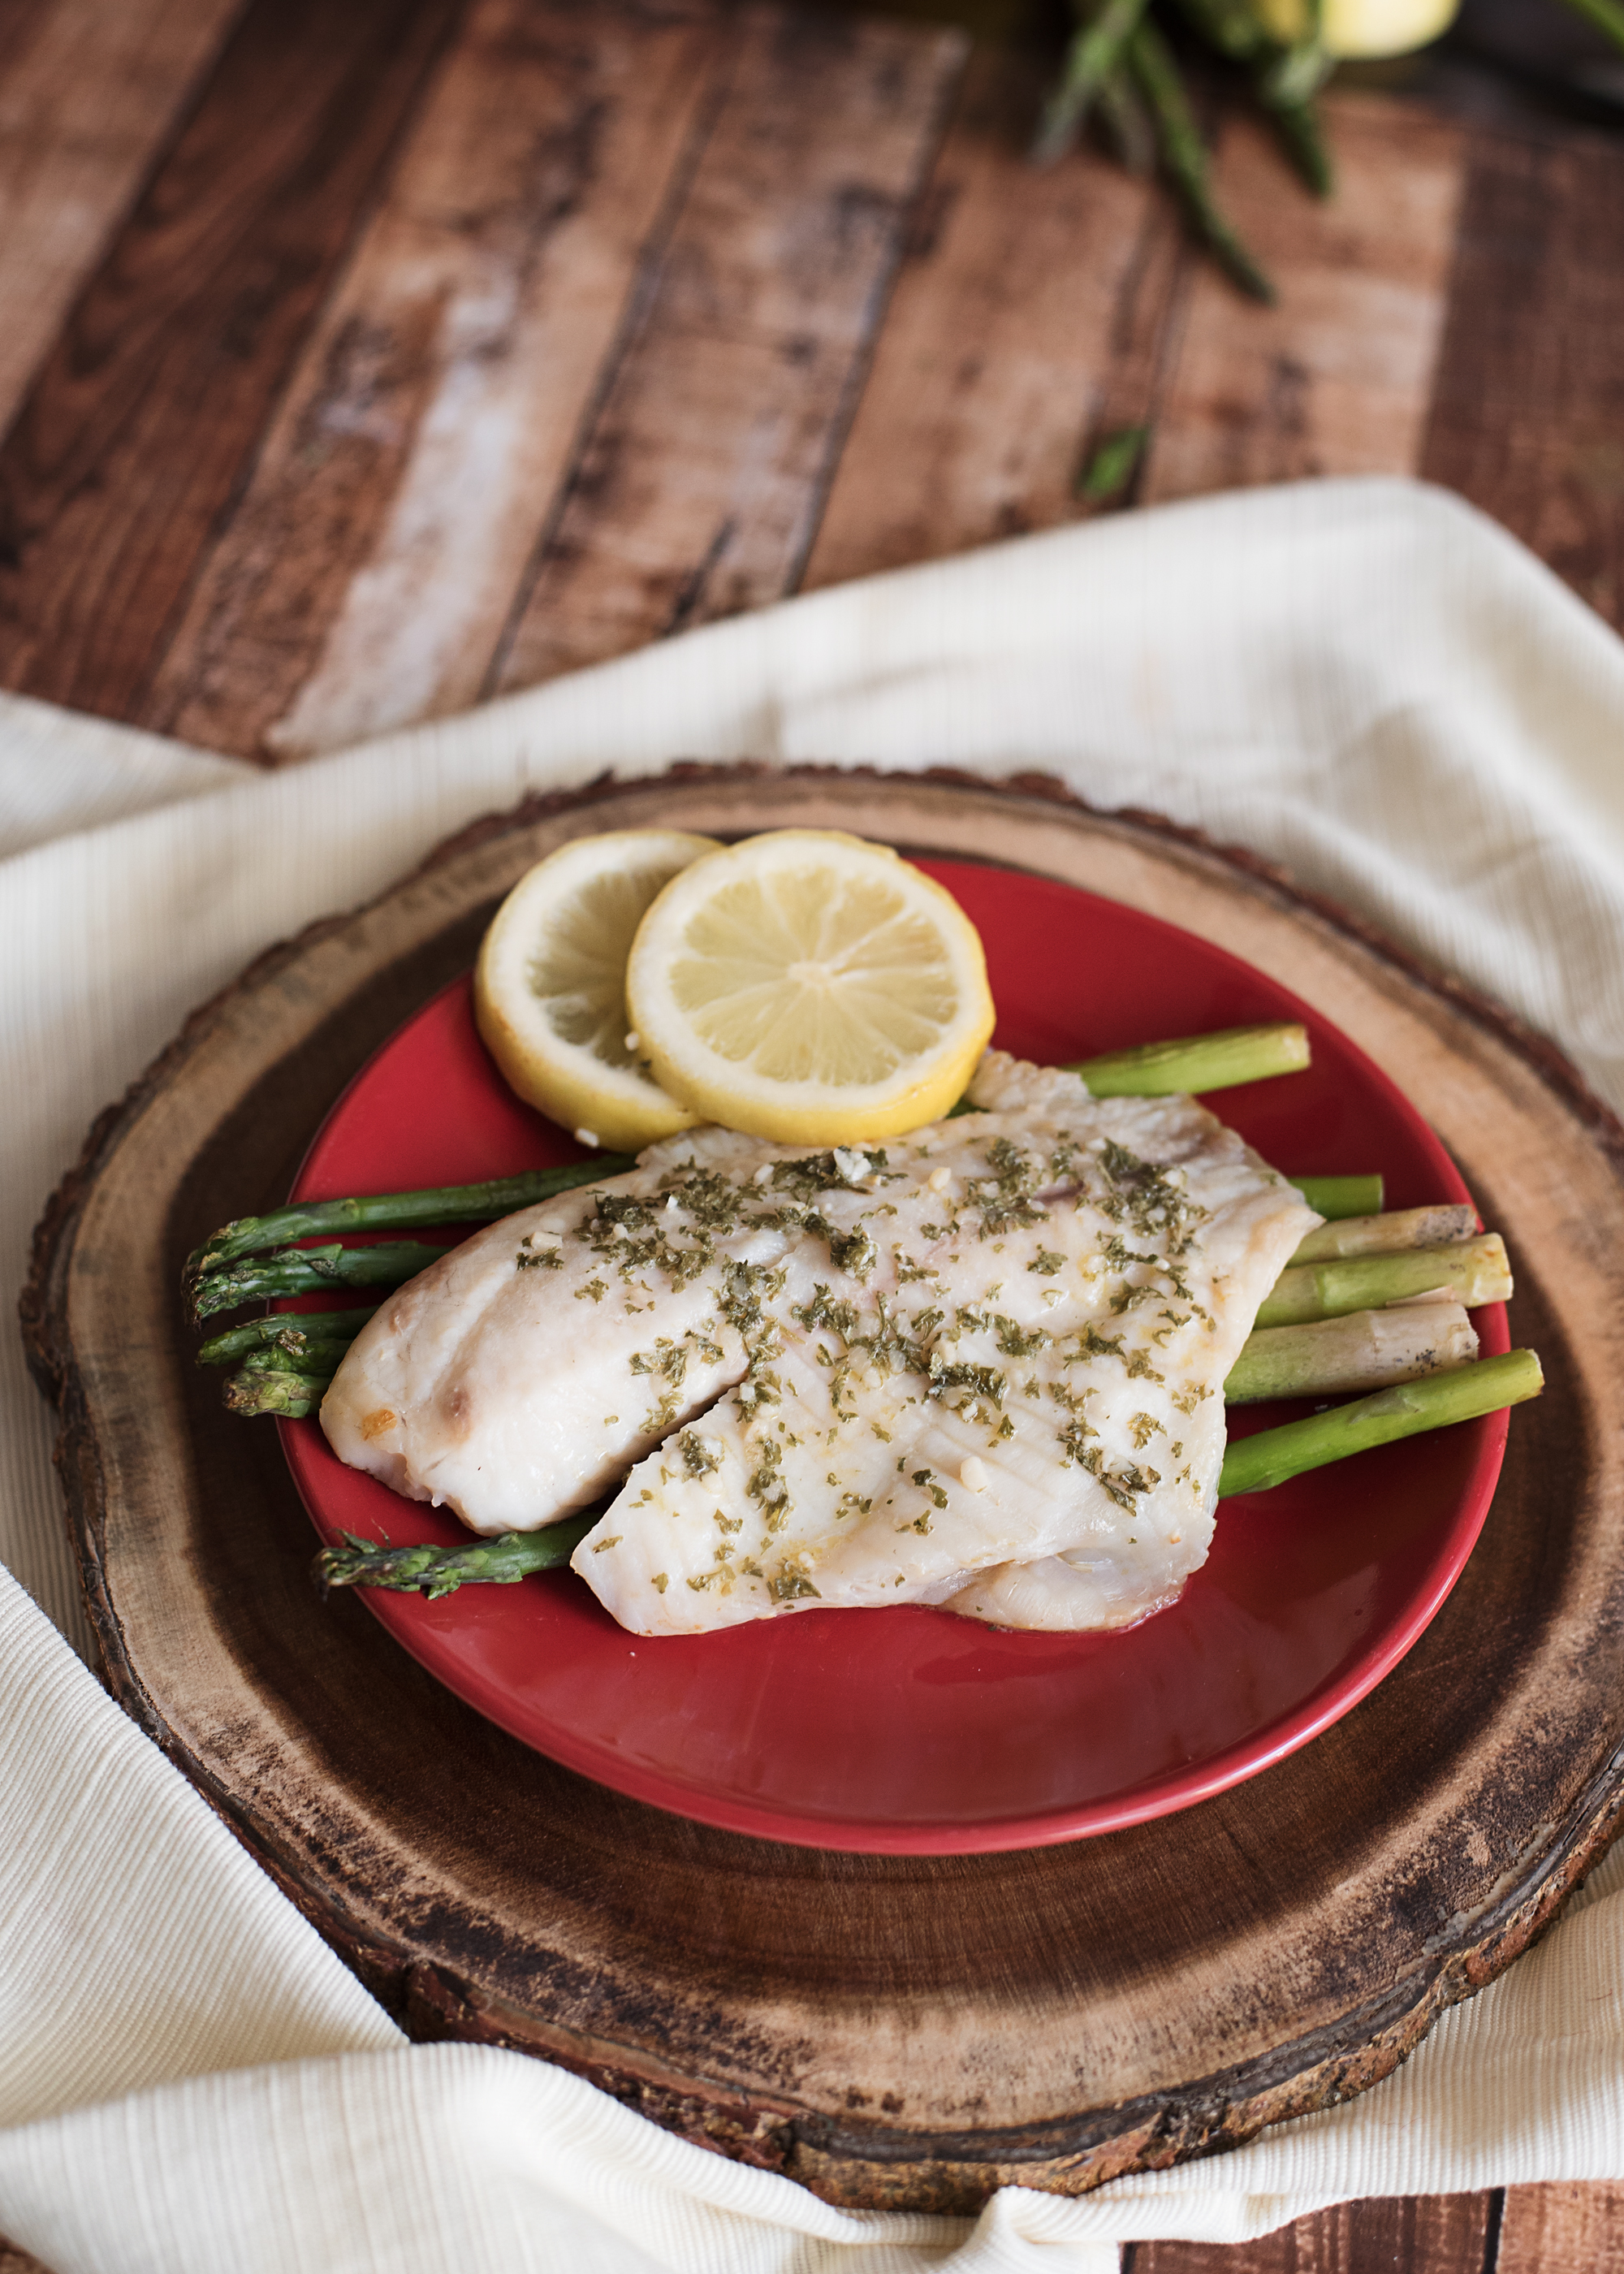 Tilapia Foil Packets Grilled or Baked Lemon Recipe - Both Ways!